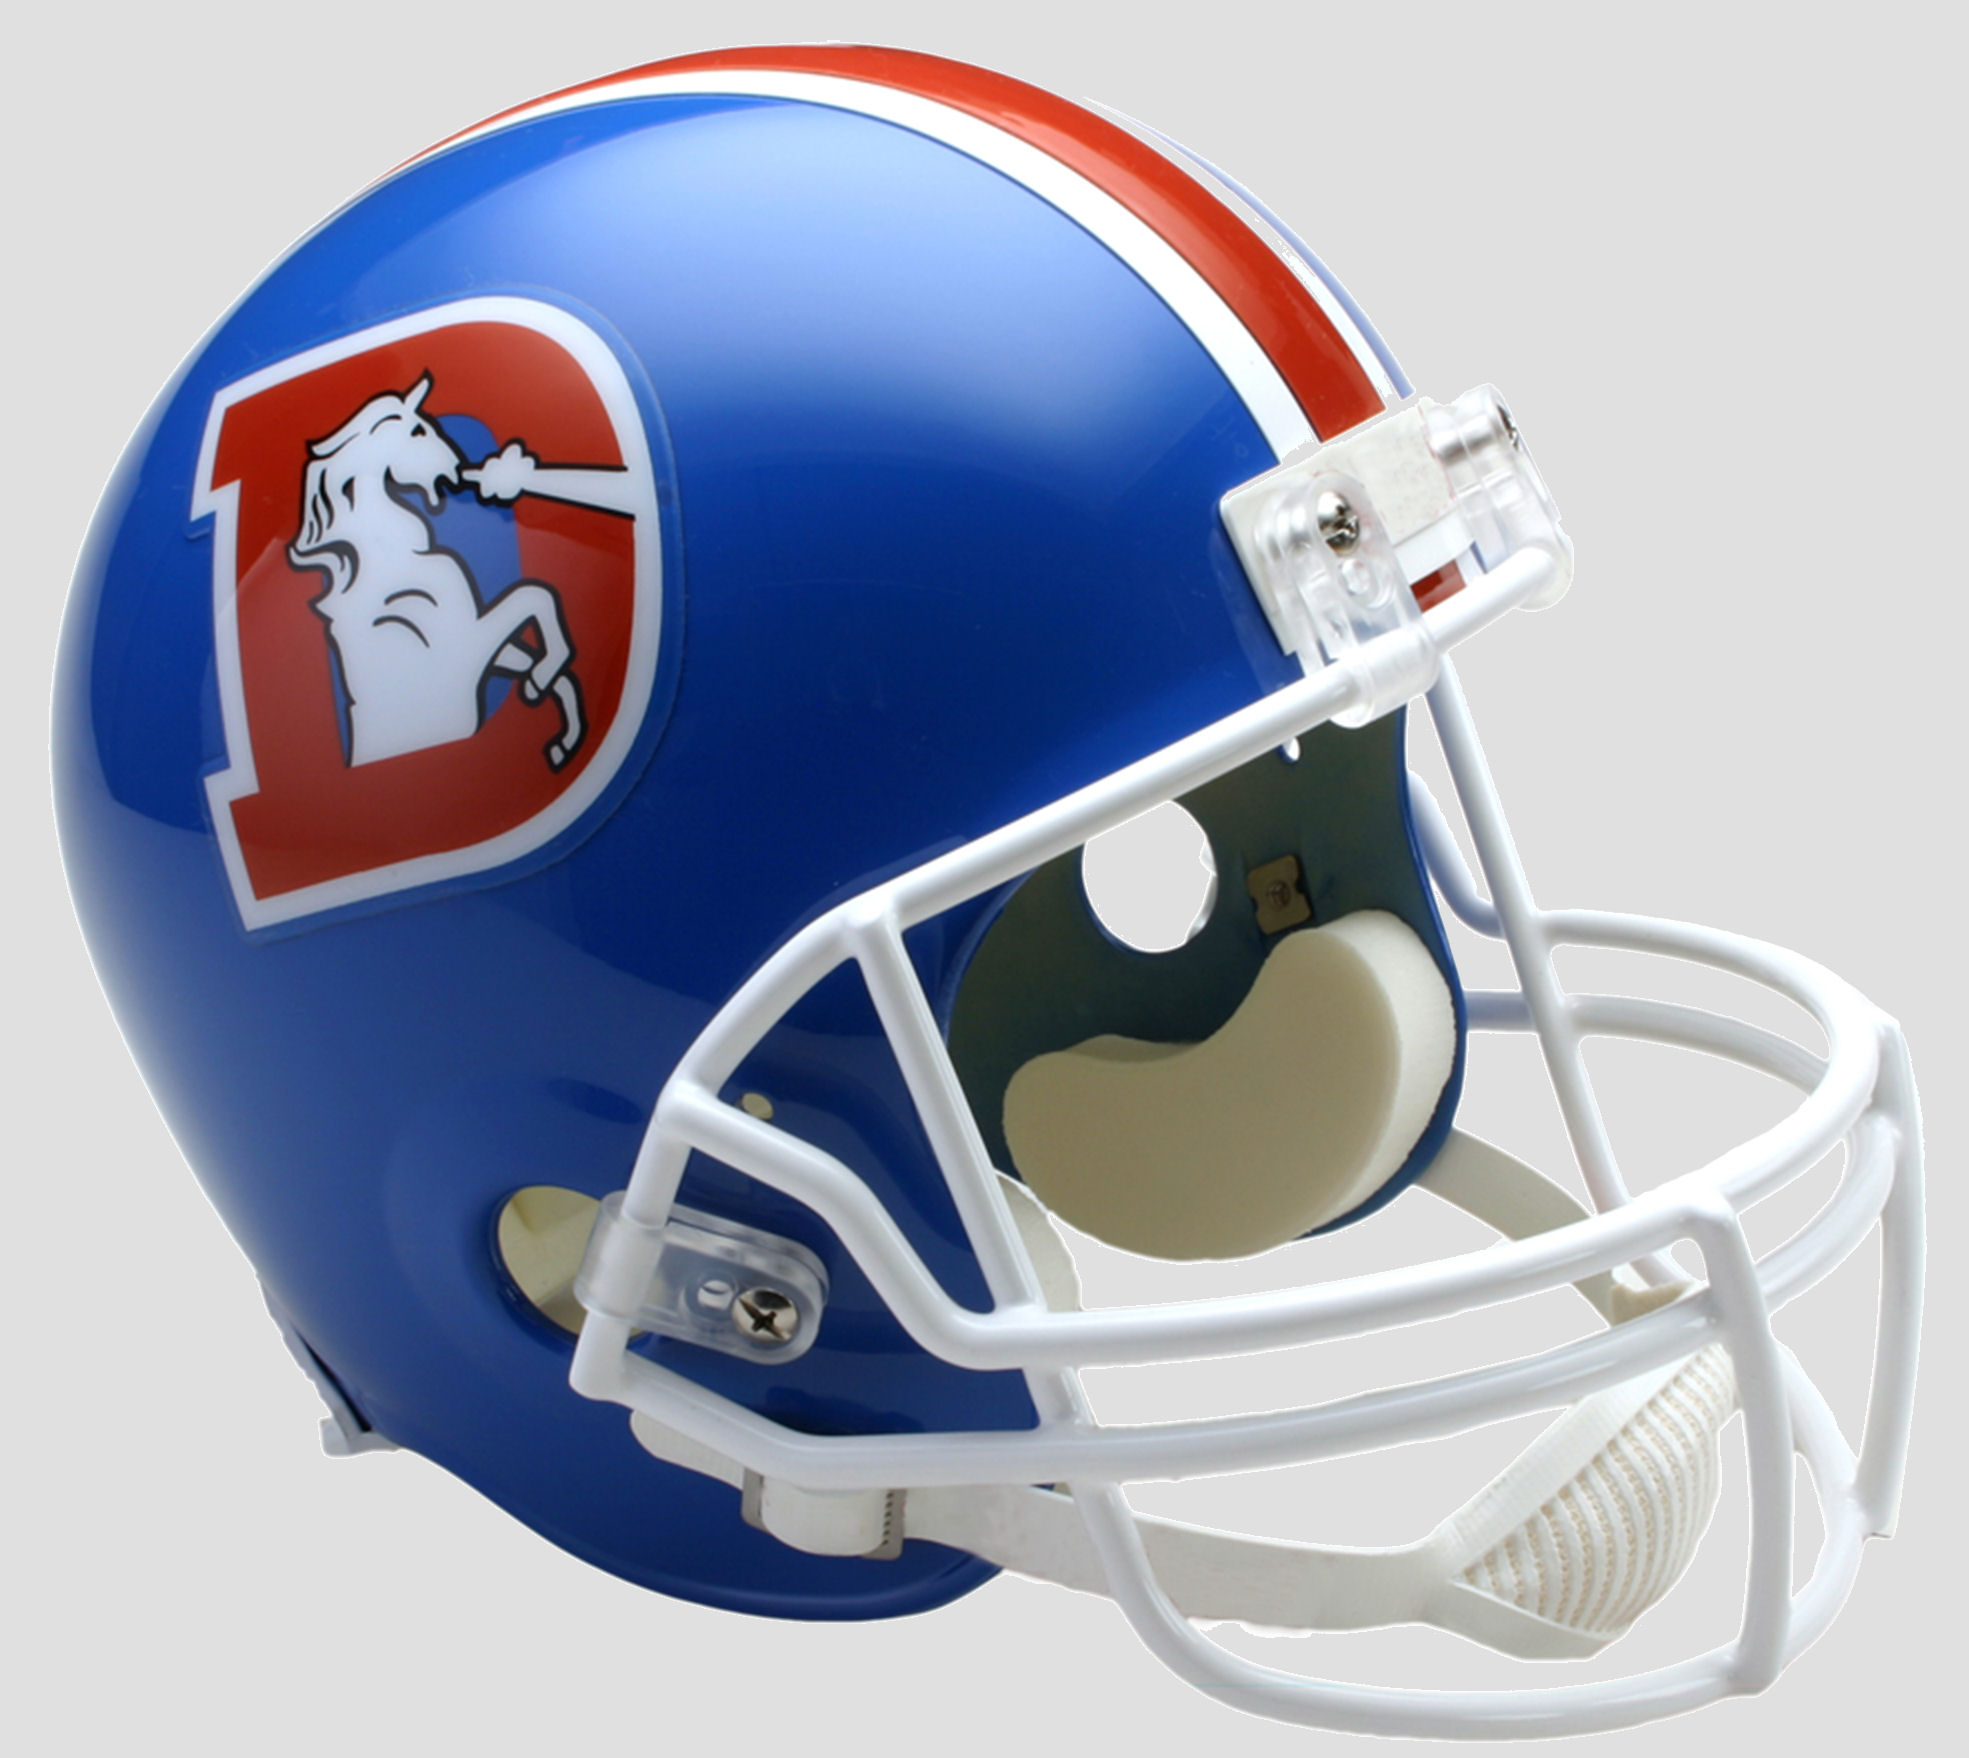 Denver Broncos 1975 to 1996 Full Size Replica Throwback Helmet